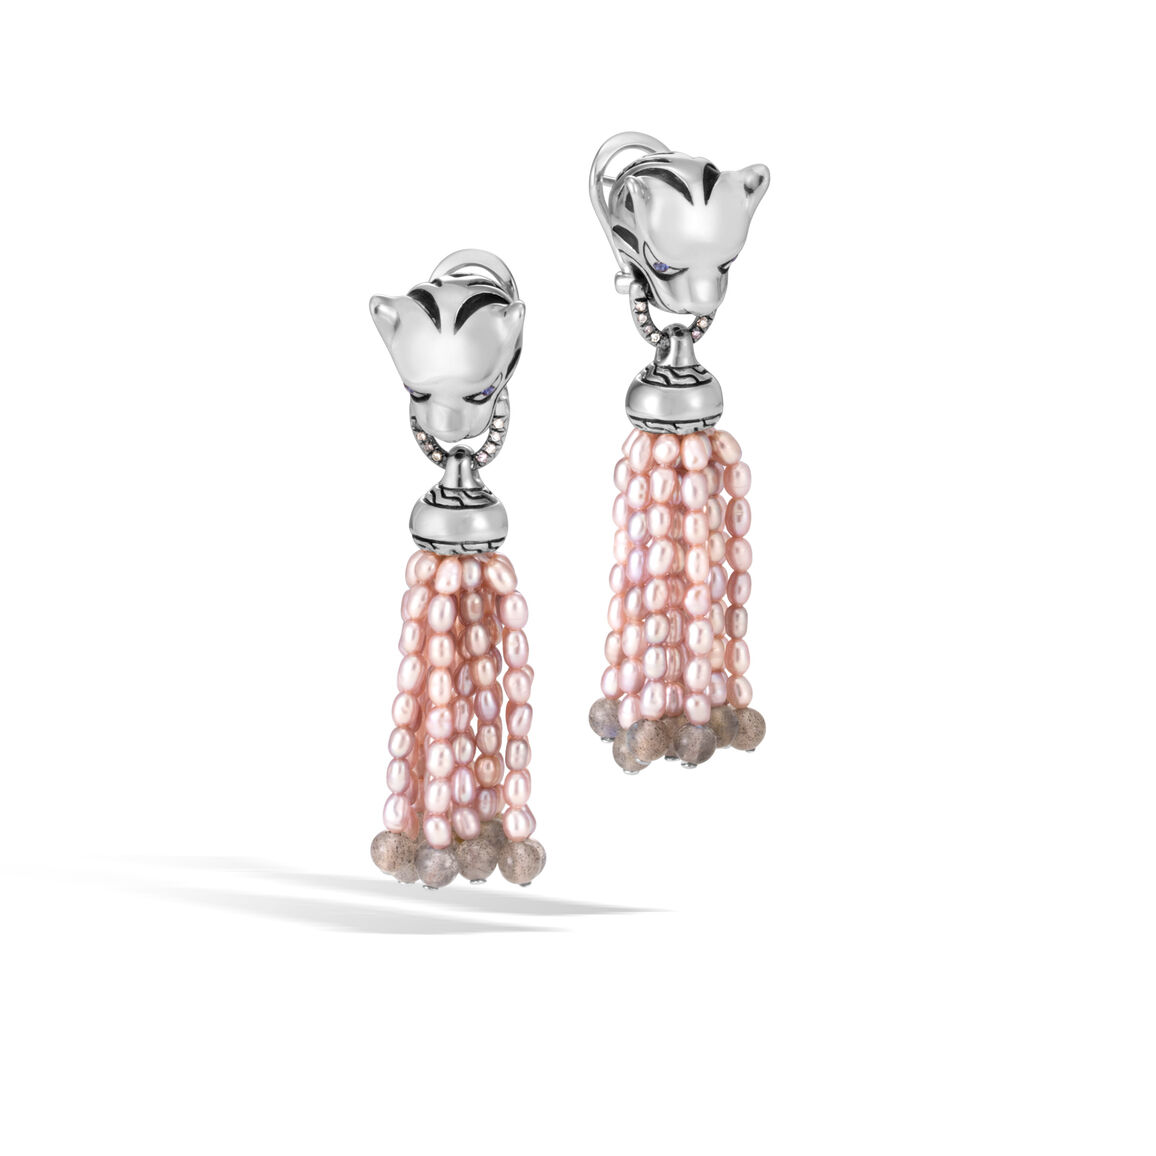 Legends Macan Drop Earring in Silver with Pearl, Gemstone